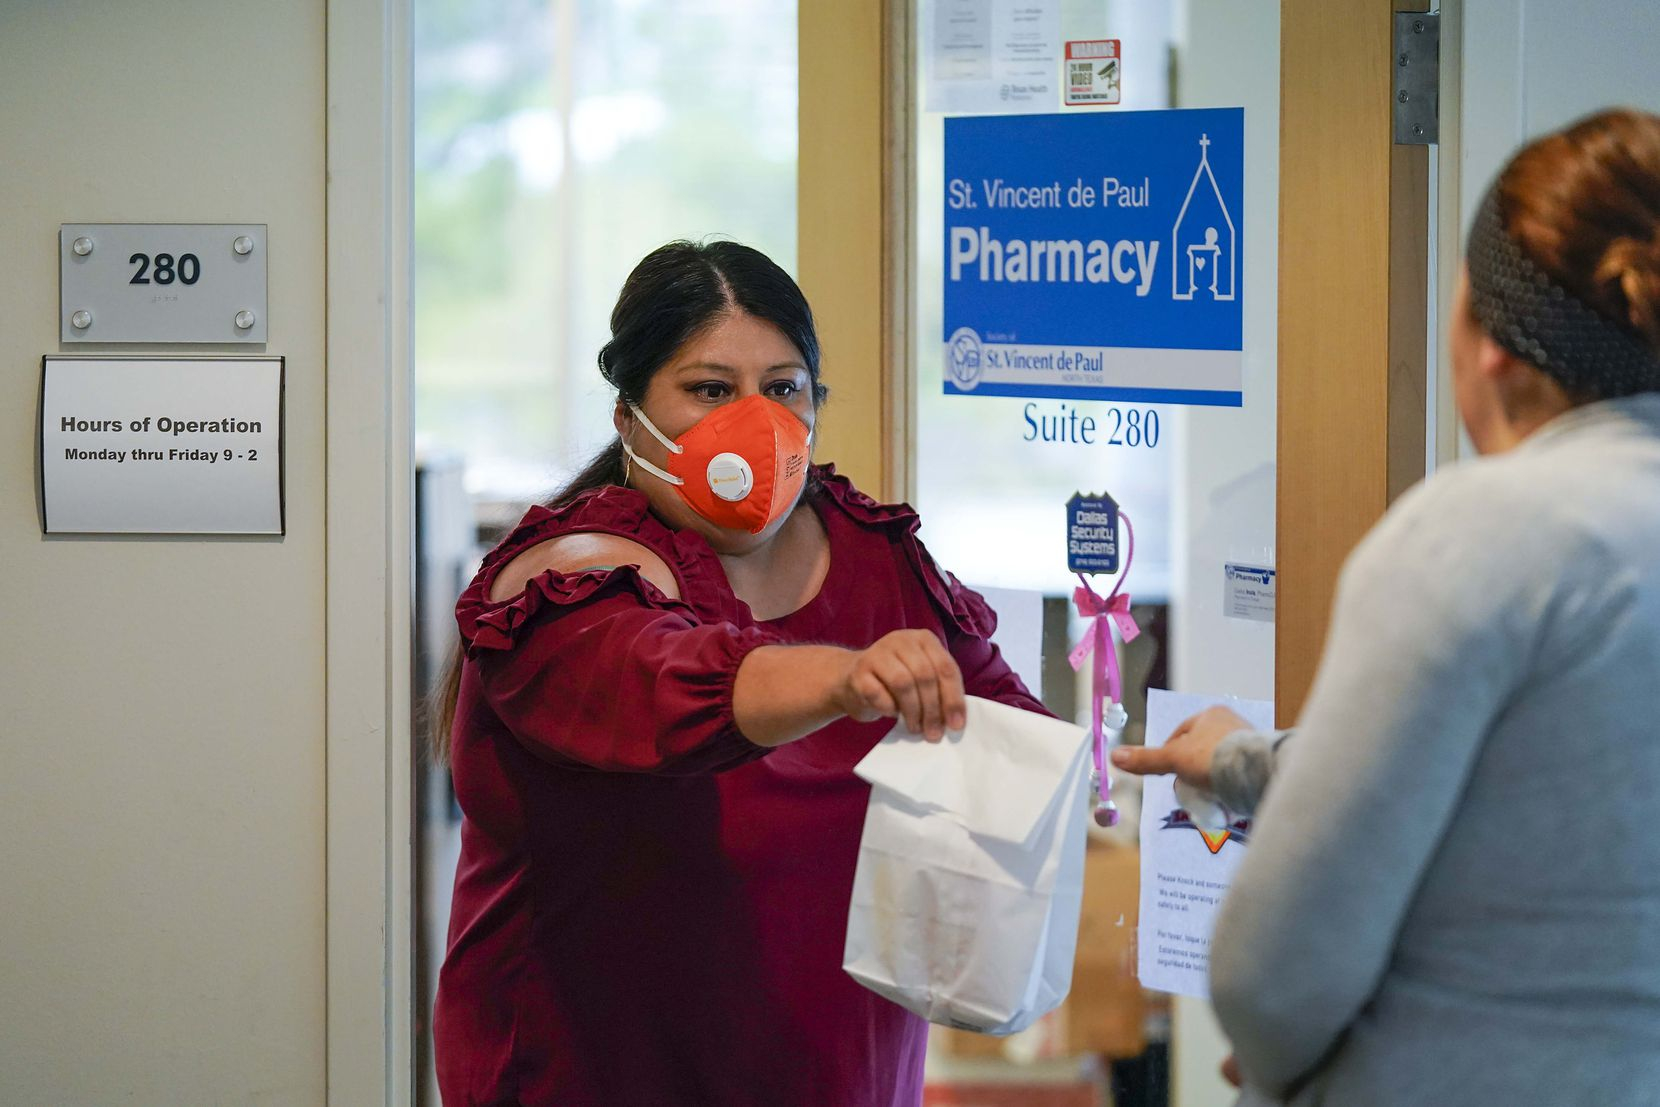 Intake Specialist Rosy Chavez handed a prescription to a client from the doorway at St. Vincent de Paul Pharmacy at the Northwest Community Center on Friday, April 3, 2020, in Dallas. The pharmacy has doubled its prescription volume as the coronavirus spreads in Dallas County.